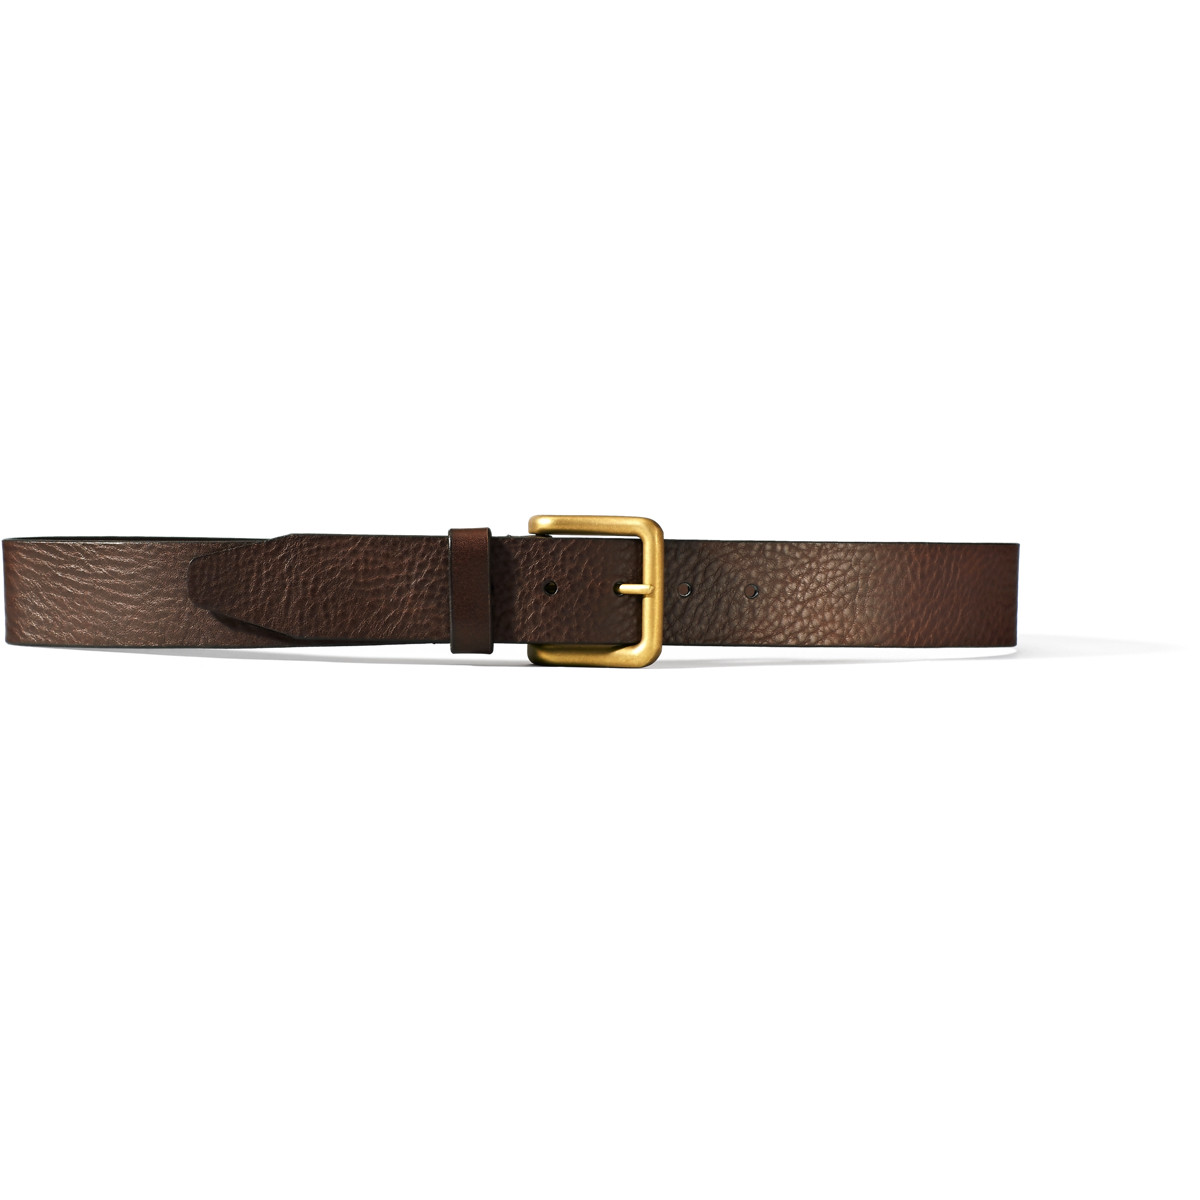 Danner Catch & Release Belt - Brown w/ Brass